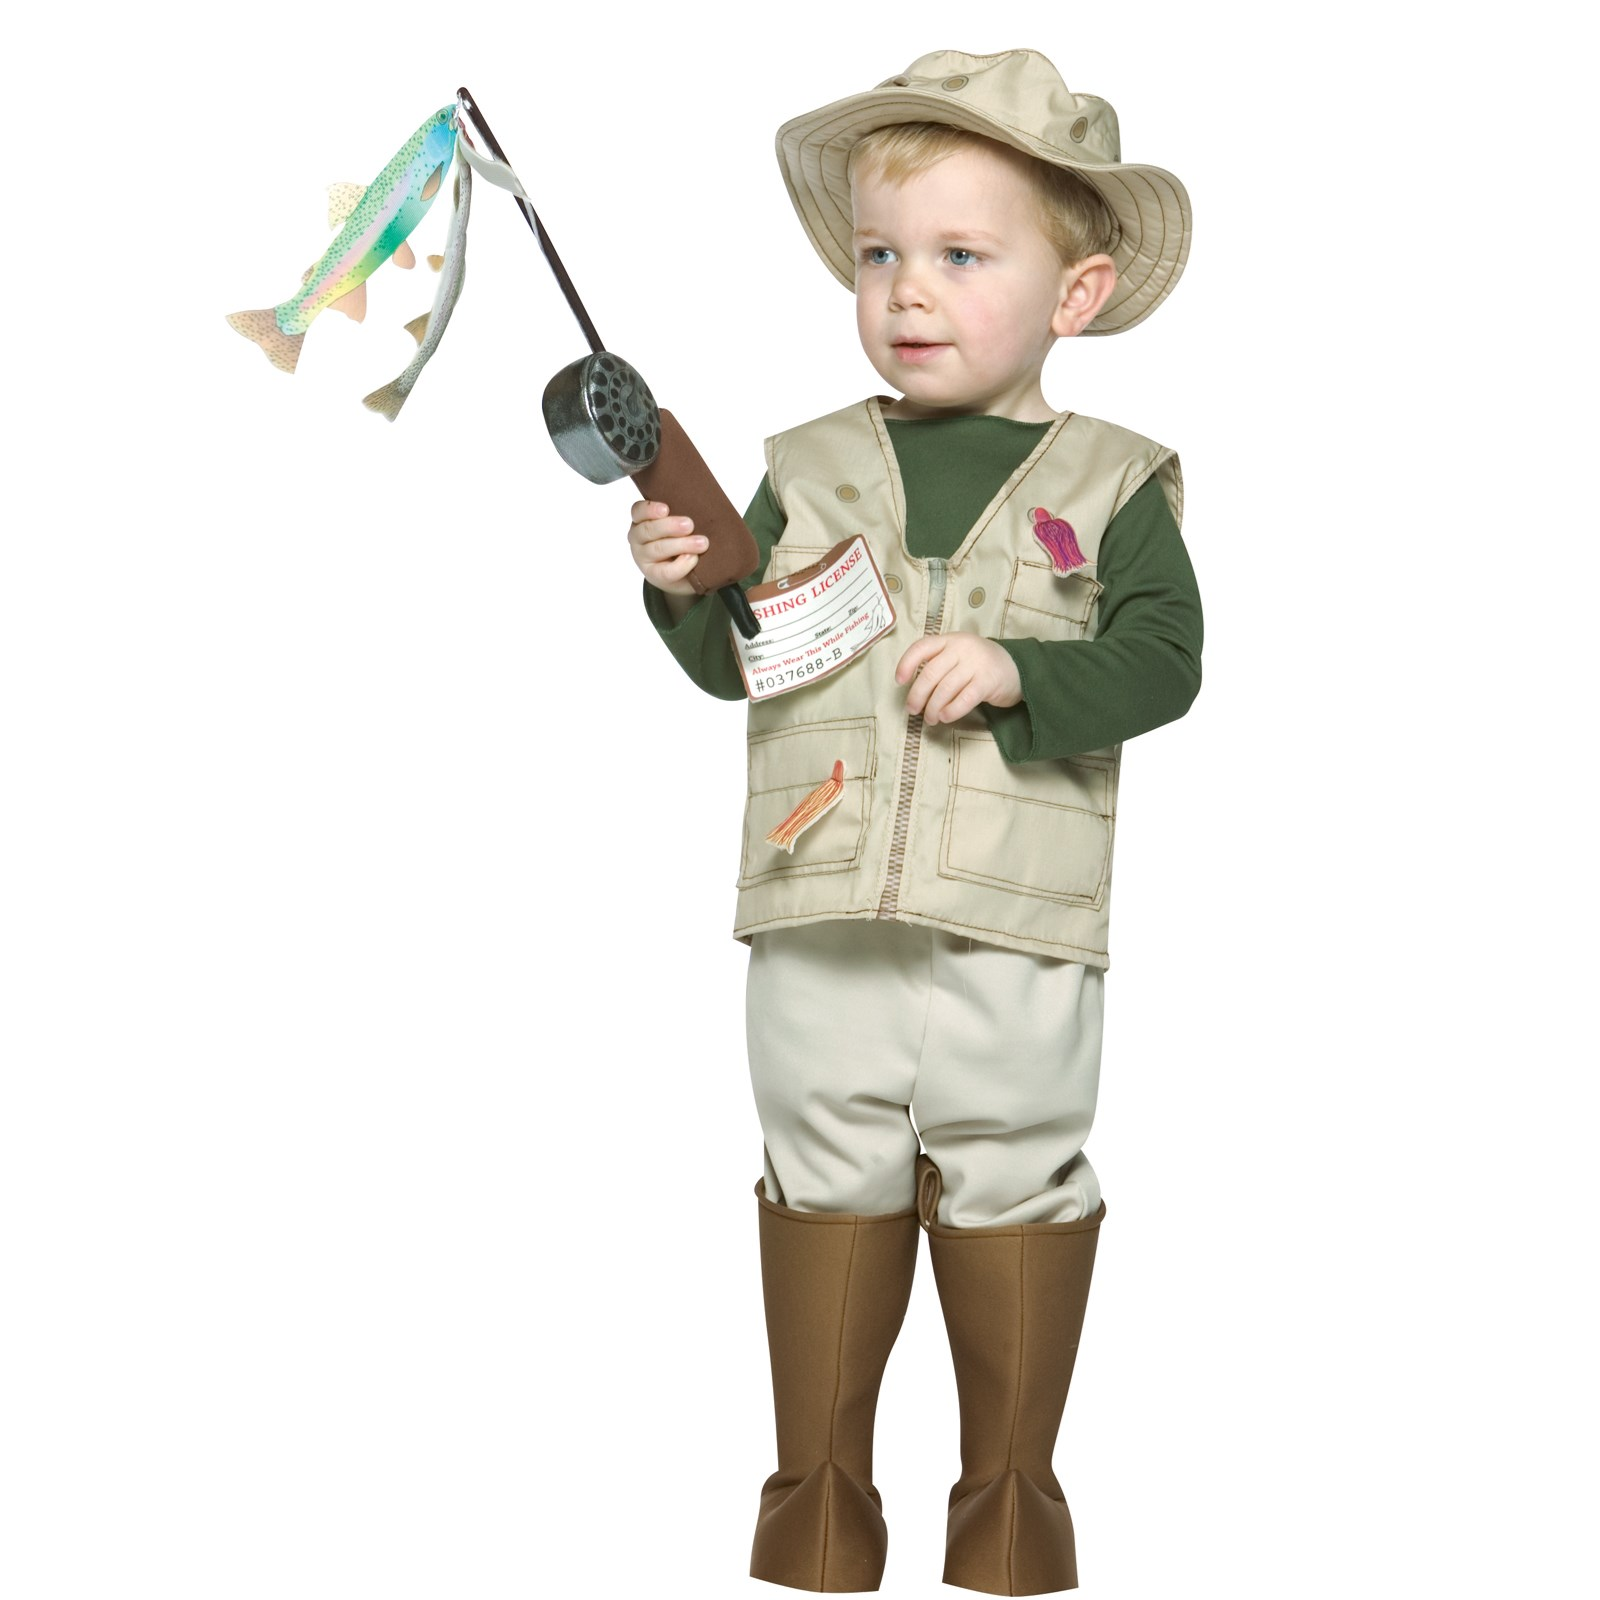 Future Fisherman Toddler Costume | BuyCostumes.com